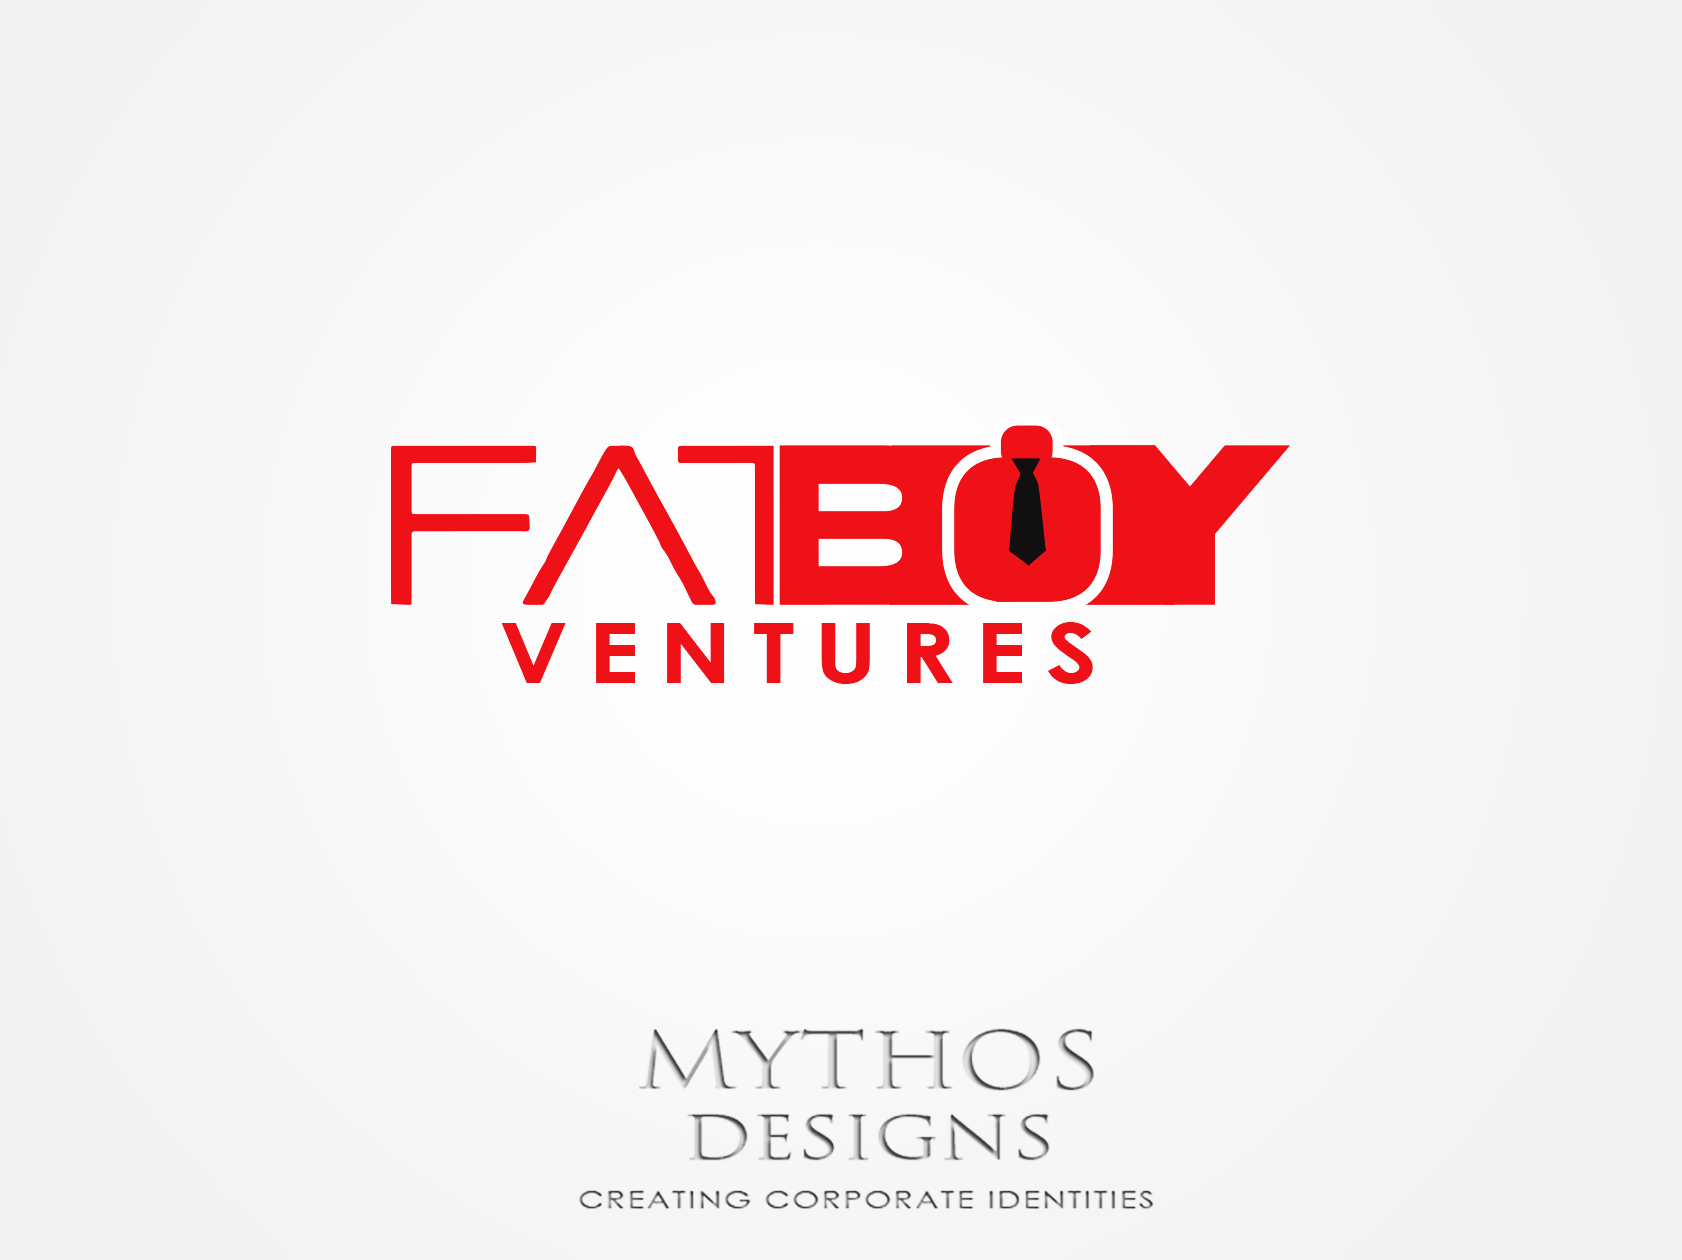 Logo Design by Mythos Designs - Entry No. 129 in the Logo Design Contest Fun Logo Design for Fat Boy Ventures.